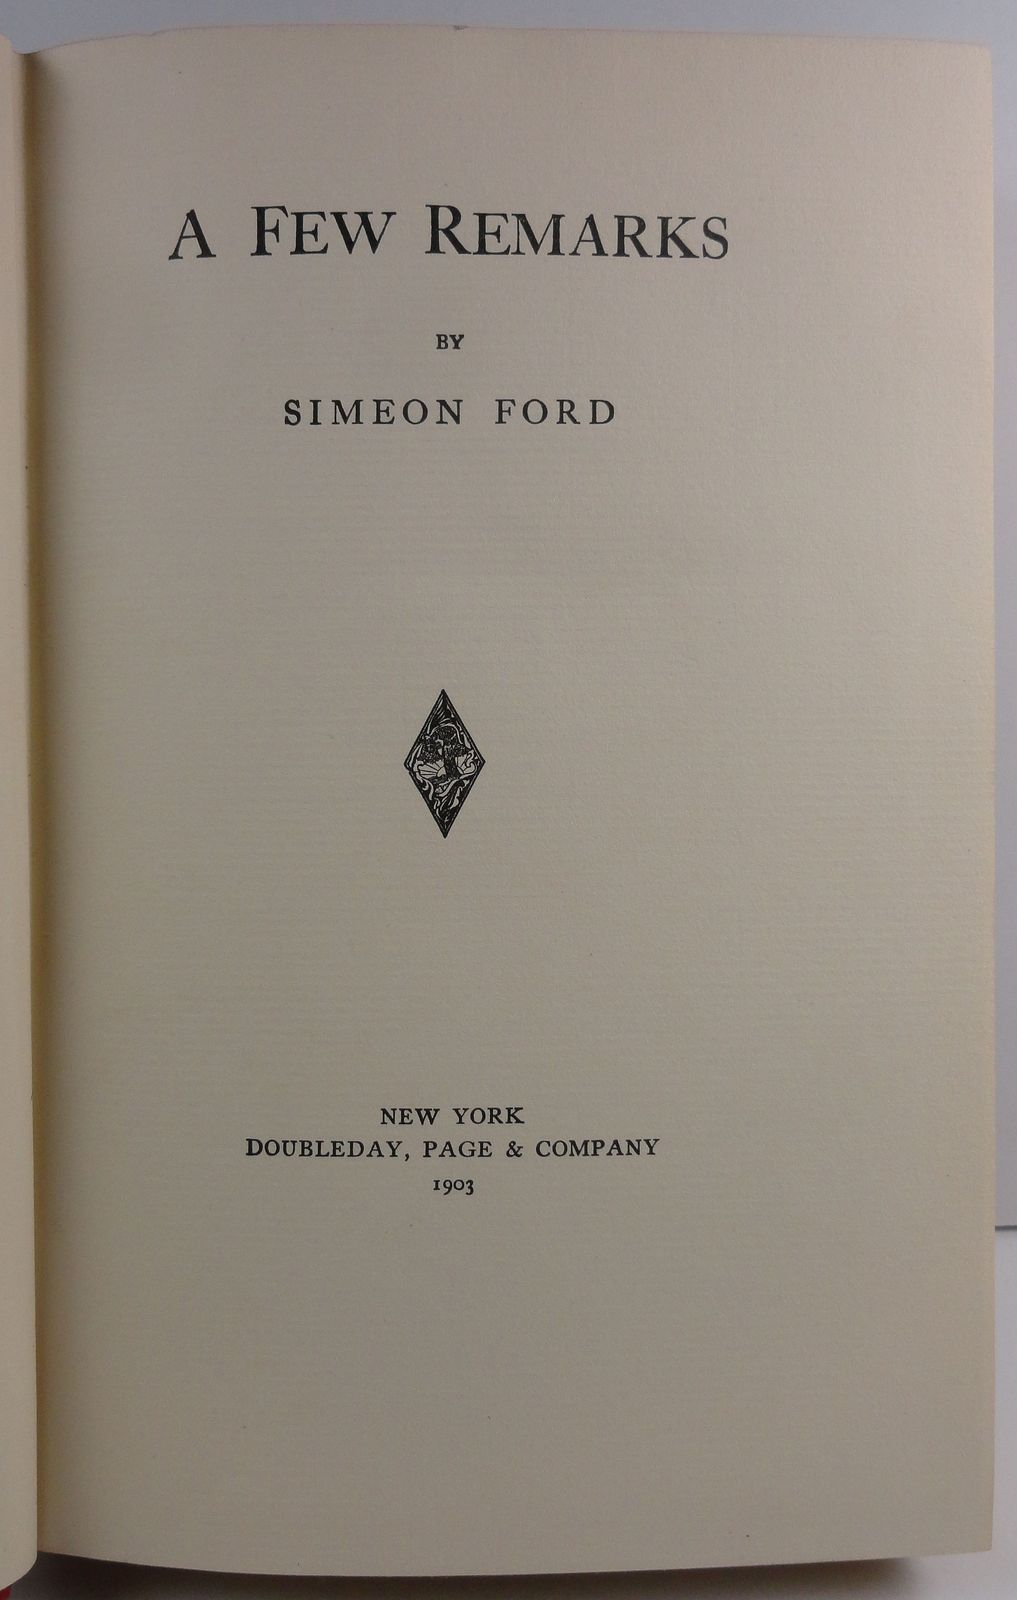 A Few Remarks by Simeon Ford 1903 Doubleday, Page